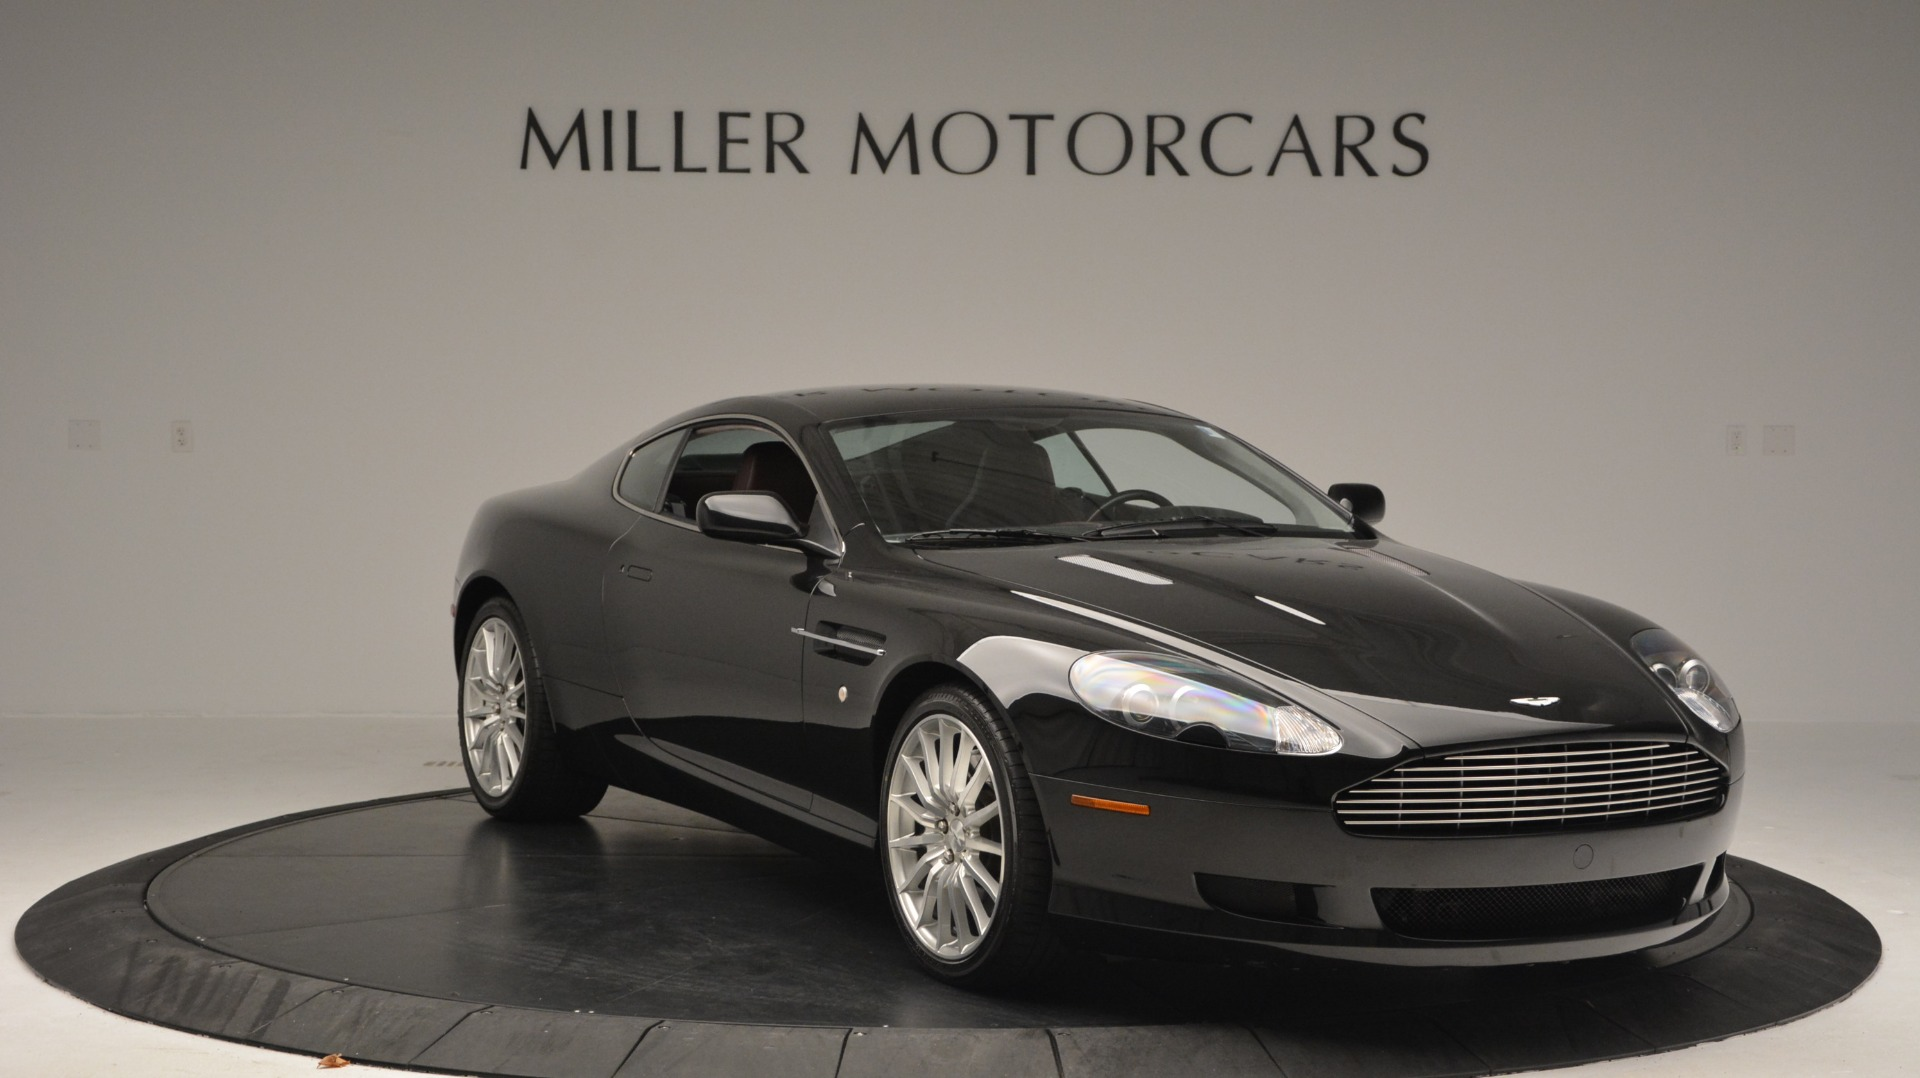 Used 2006 Aston Martin DB9 Coupe For Sale In Westport, CT 2832_p11